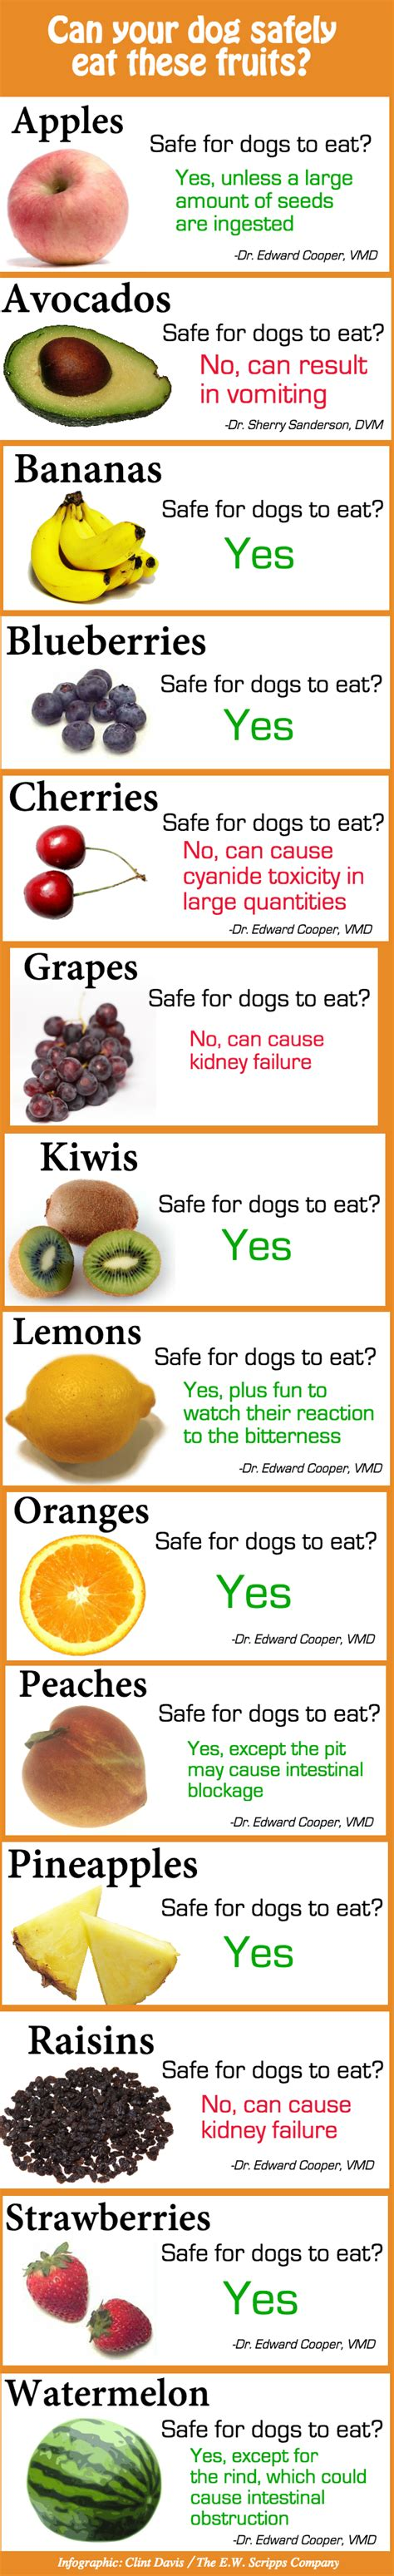 can dogs eat plums can your safely eat these fruits pictures photos and images for